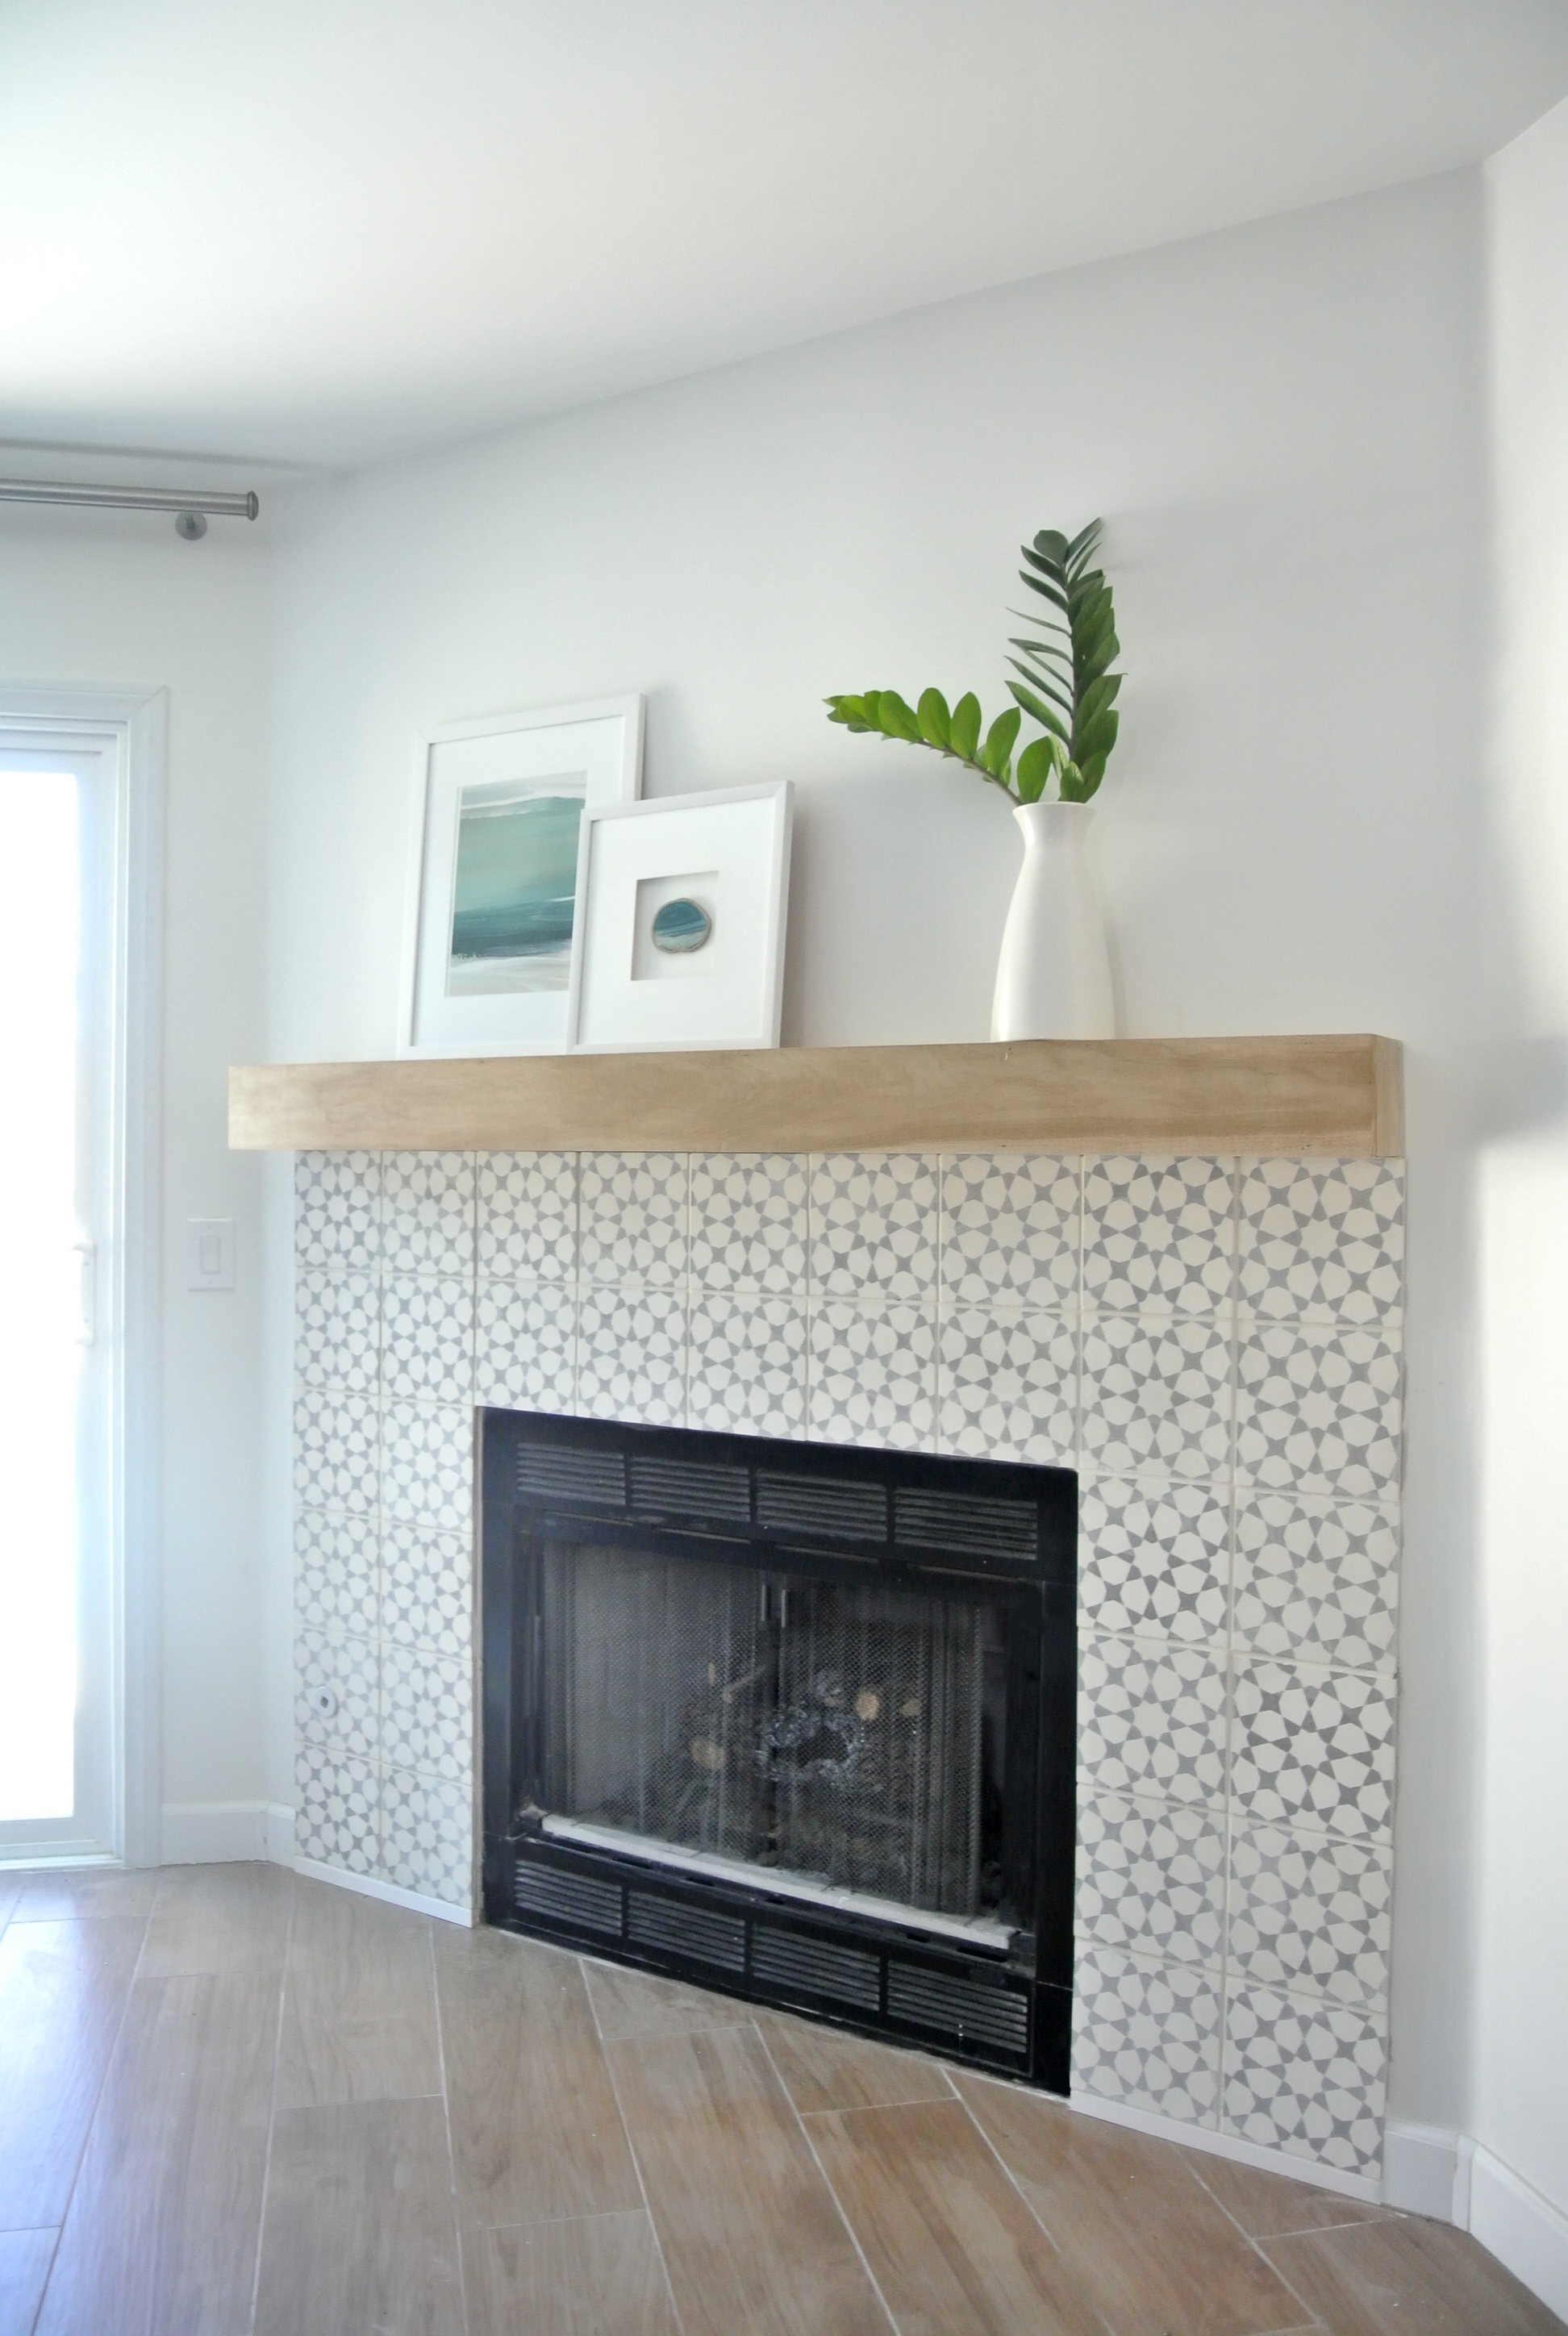 Diy fireplace makeover centsational style Corner fireplace makeover ideas